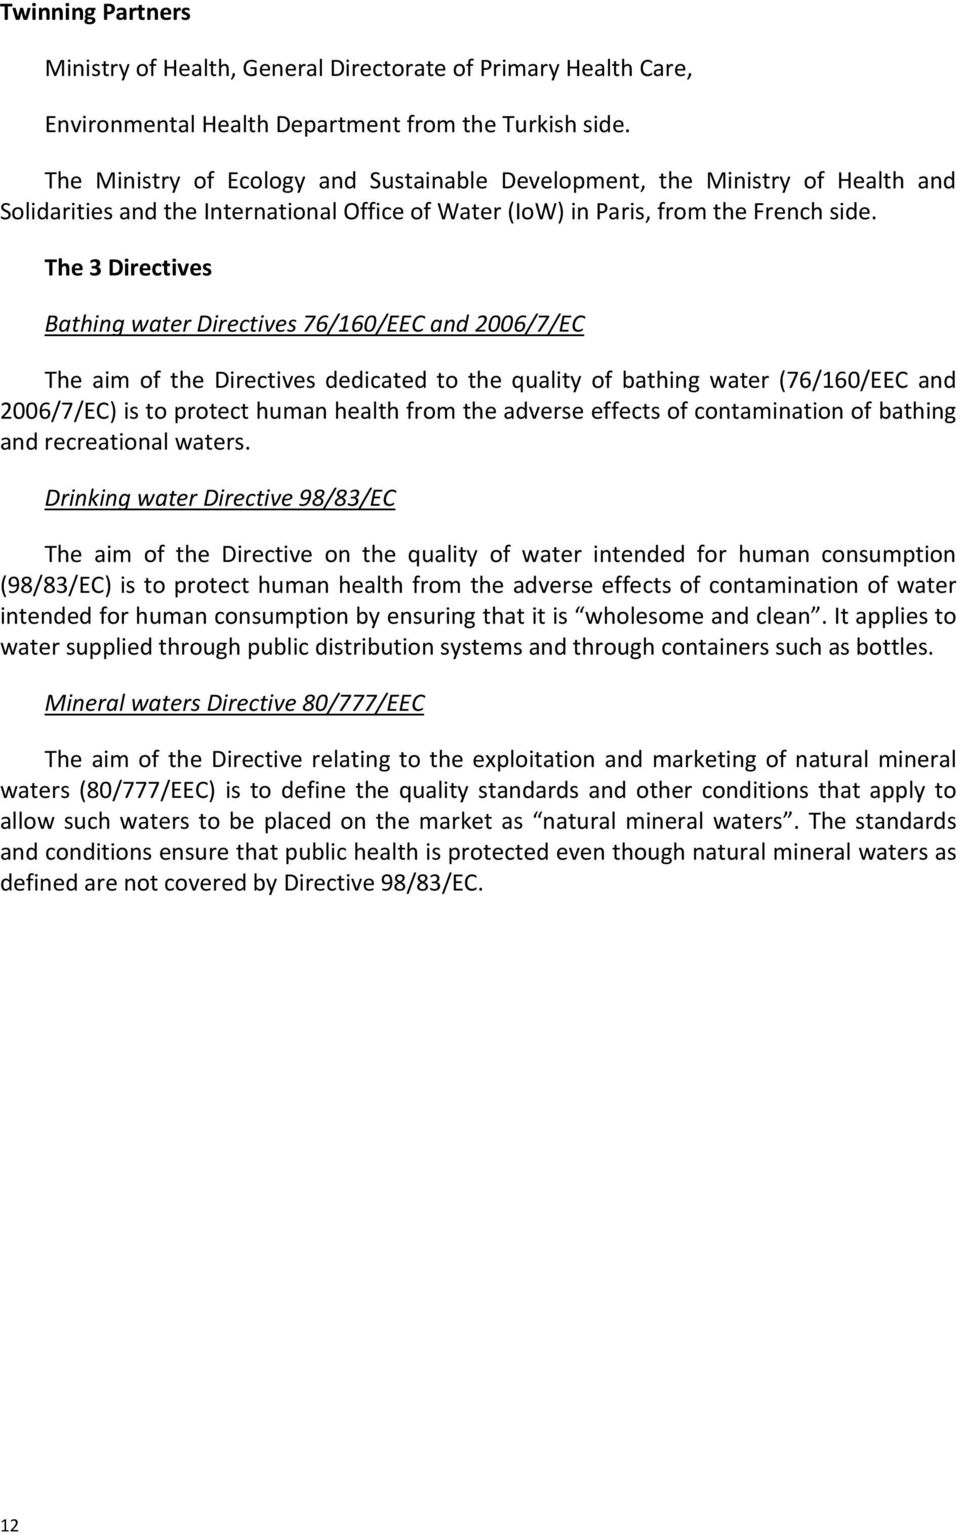 The 3 Directives Bathing water Directives 76/160/EEC and 2006/7/EC The aim of the Directives dedicated to the quality of bathing water (76/160/EEC and 2006/7/EC) is to protect human health from the